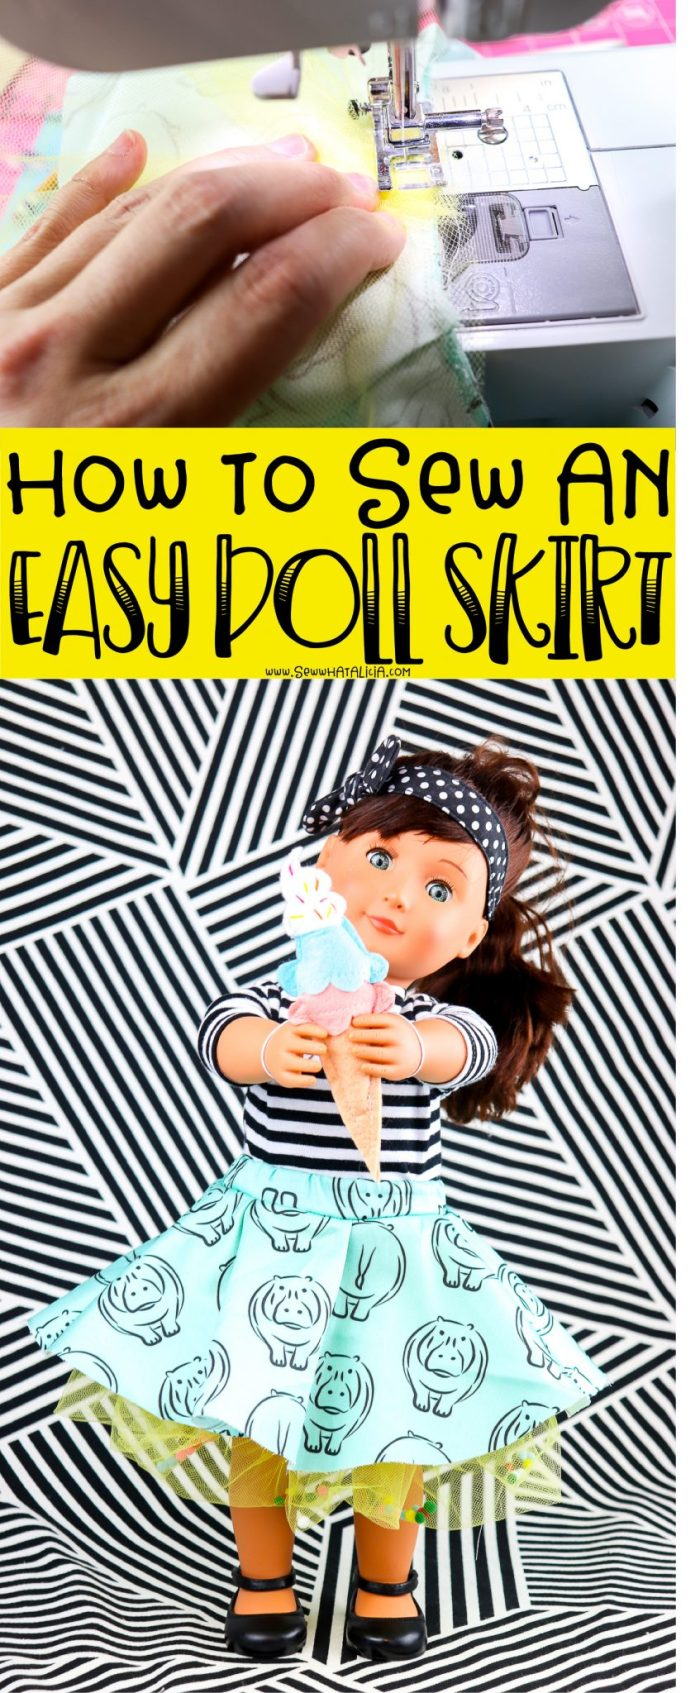 pictured doll holding ice cream cone wearing circle skirt and hands sewing skirt